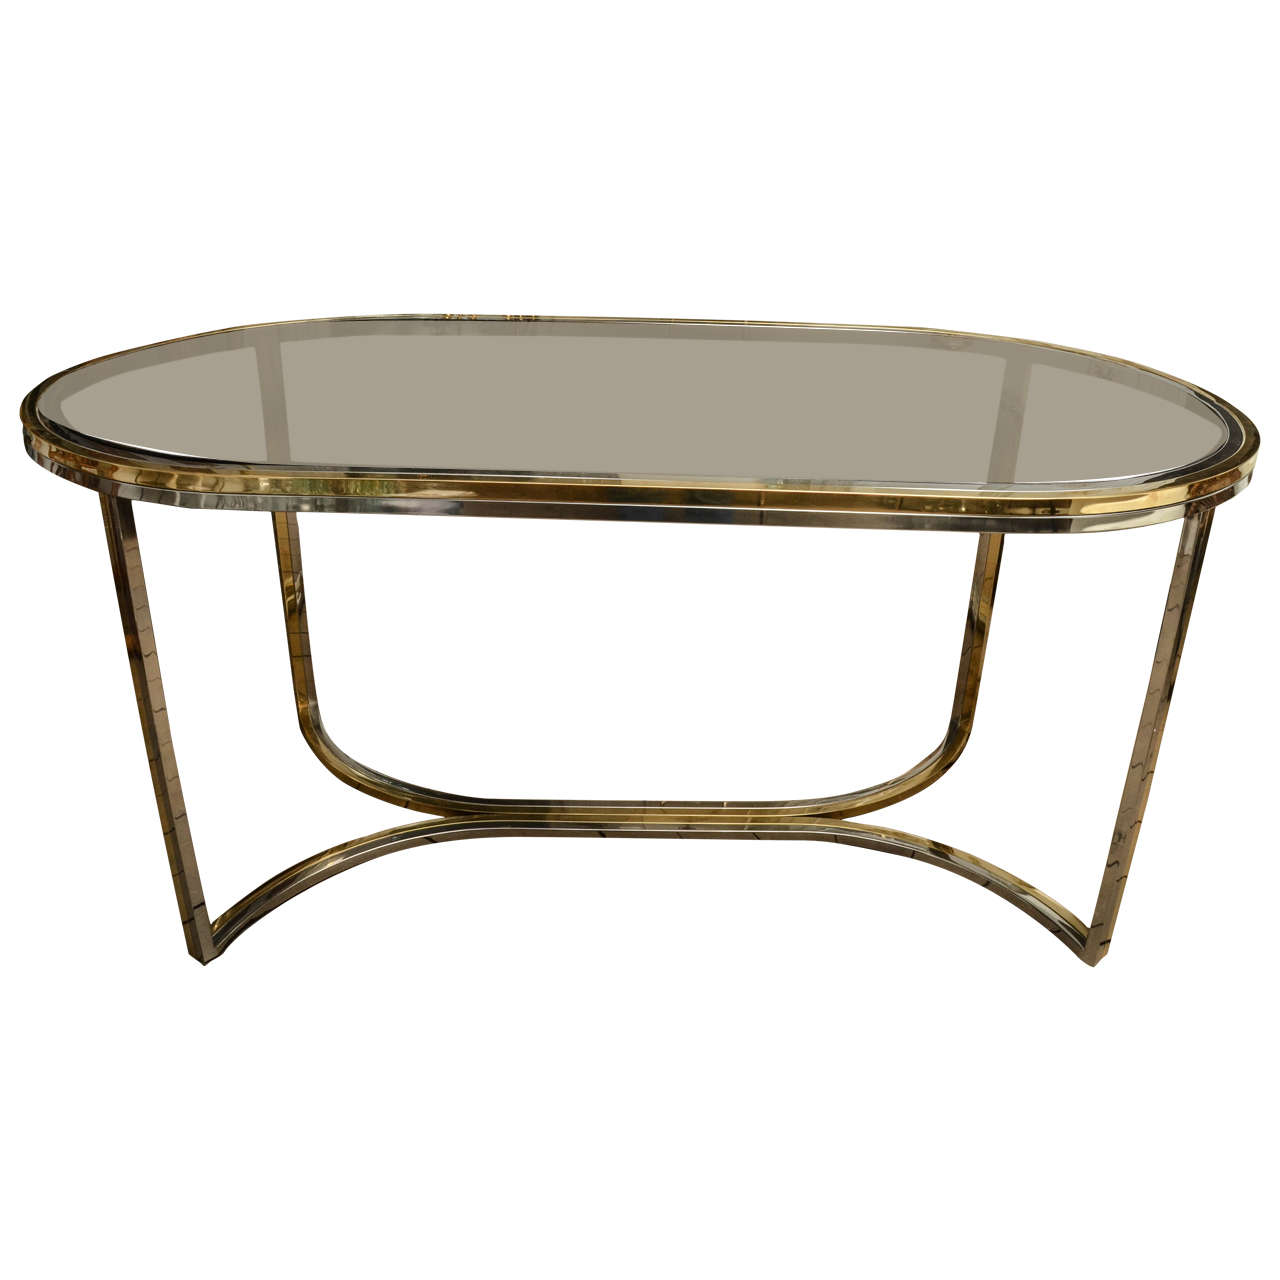 Chrome and brass oval dining table with smoked glass top for Biggest dining table